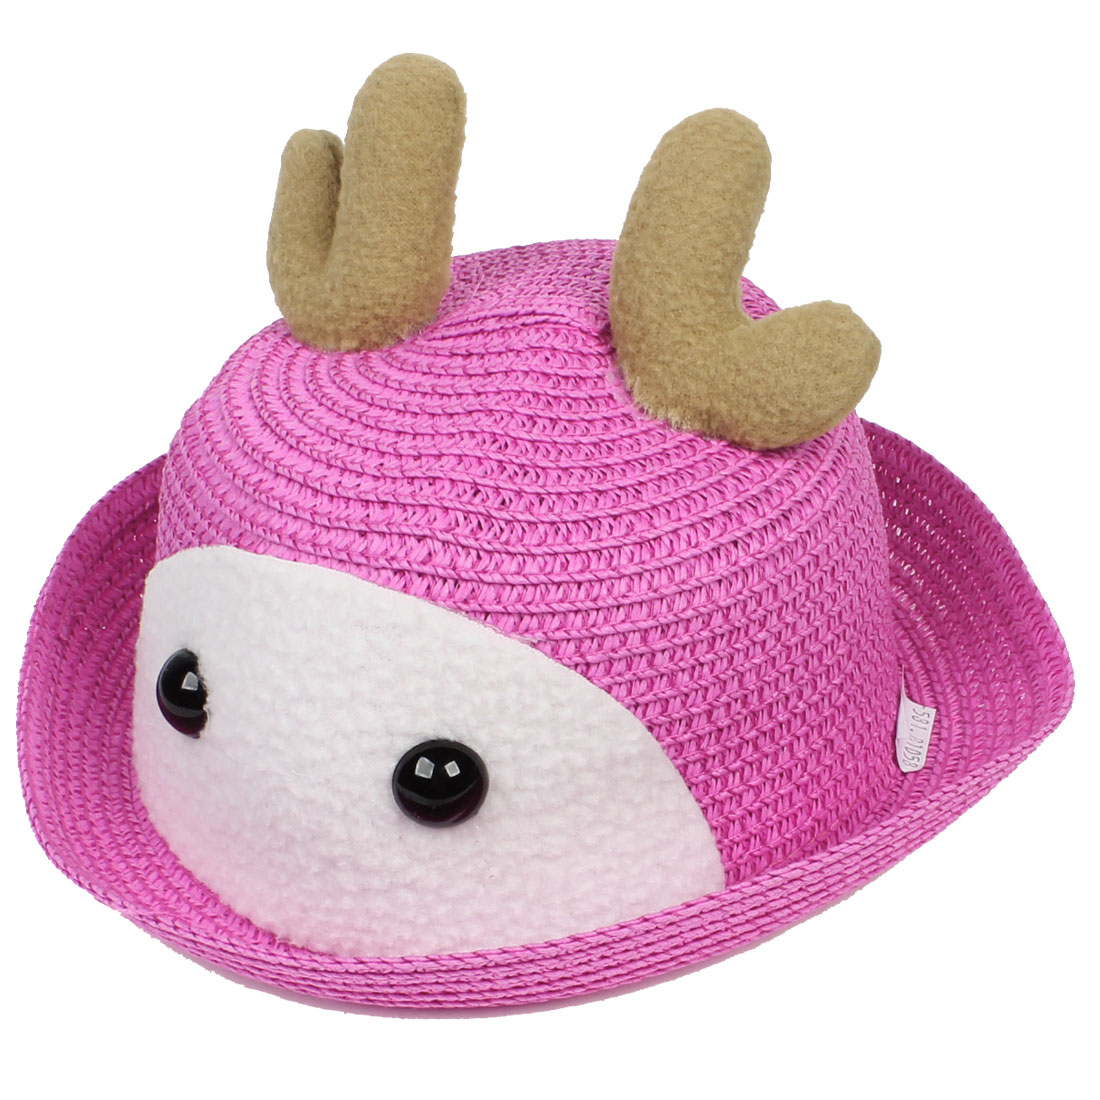 Cloche Shape Eyes Detail Beach Summer Straw Hat Cap Fuchsia for Kids